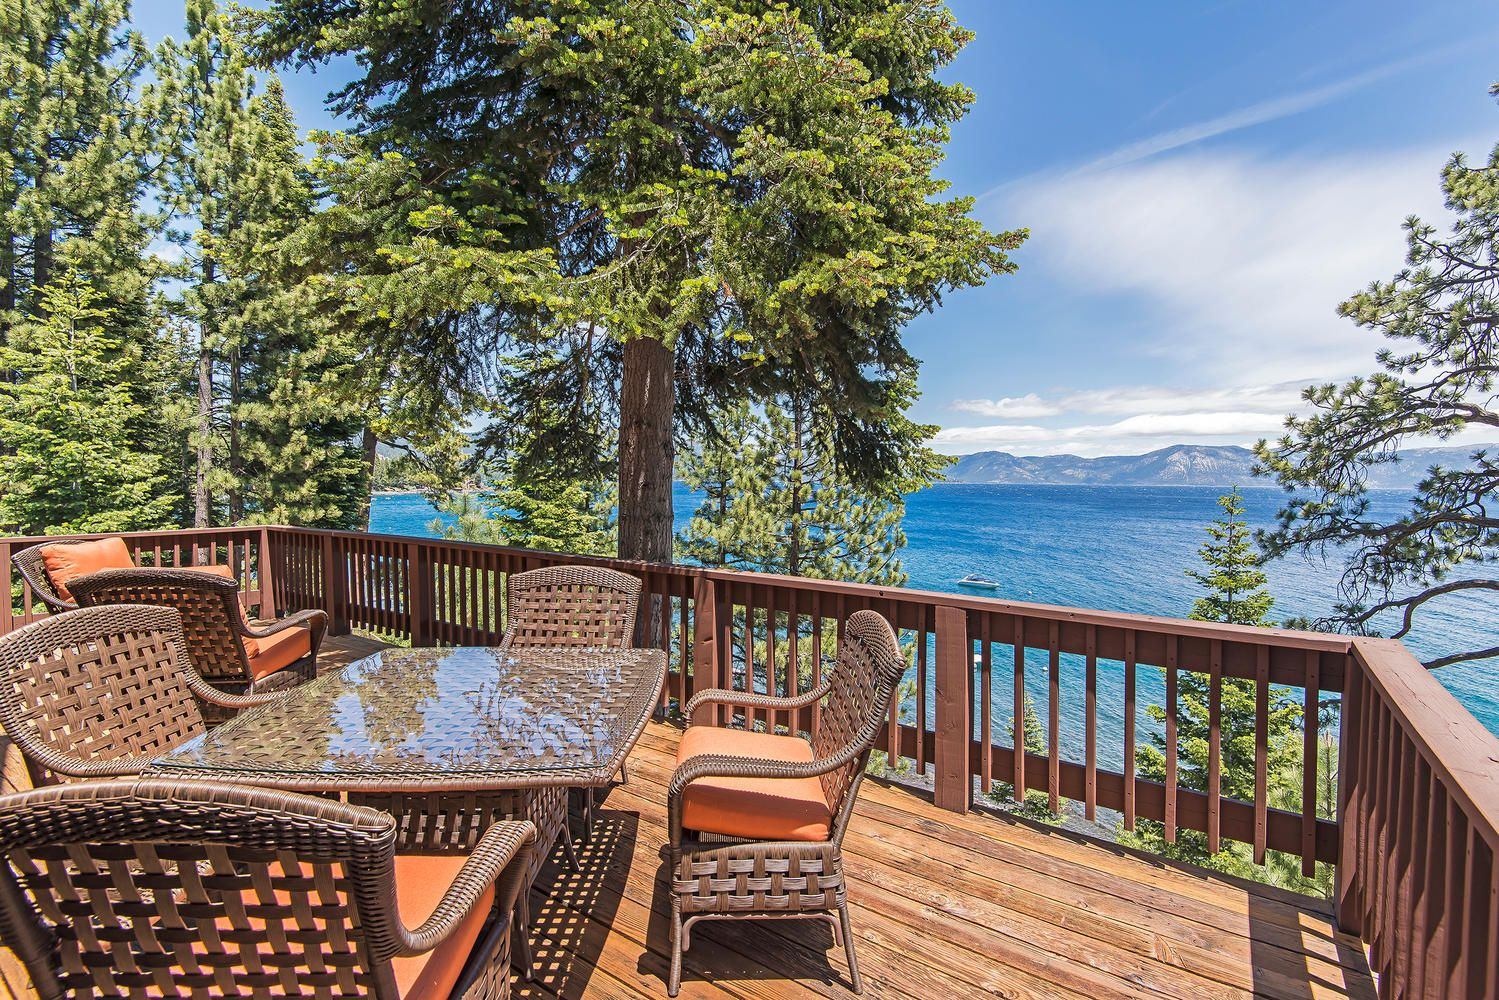 grge cabin re cabins tahoe vacation south lakefront near gme lake rentals casinos